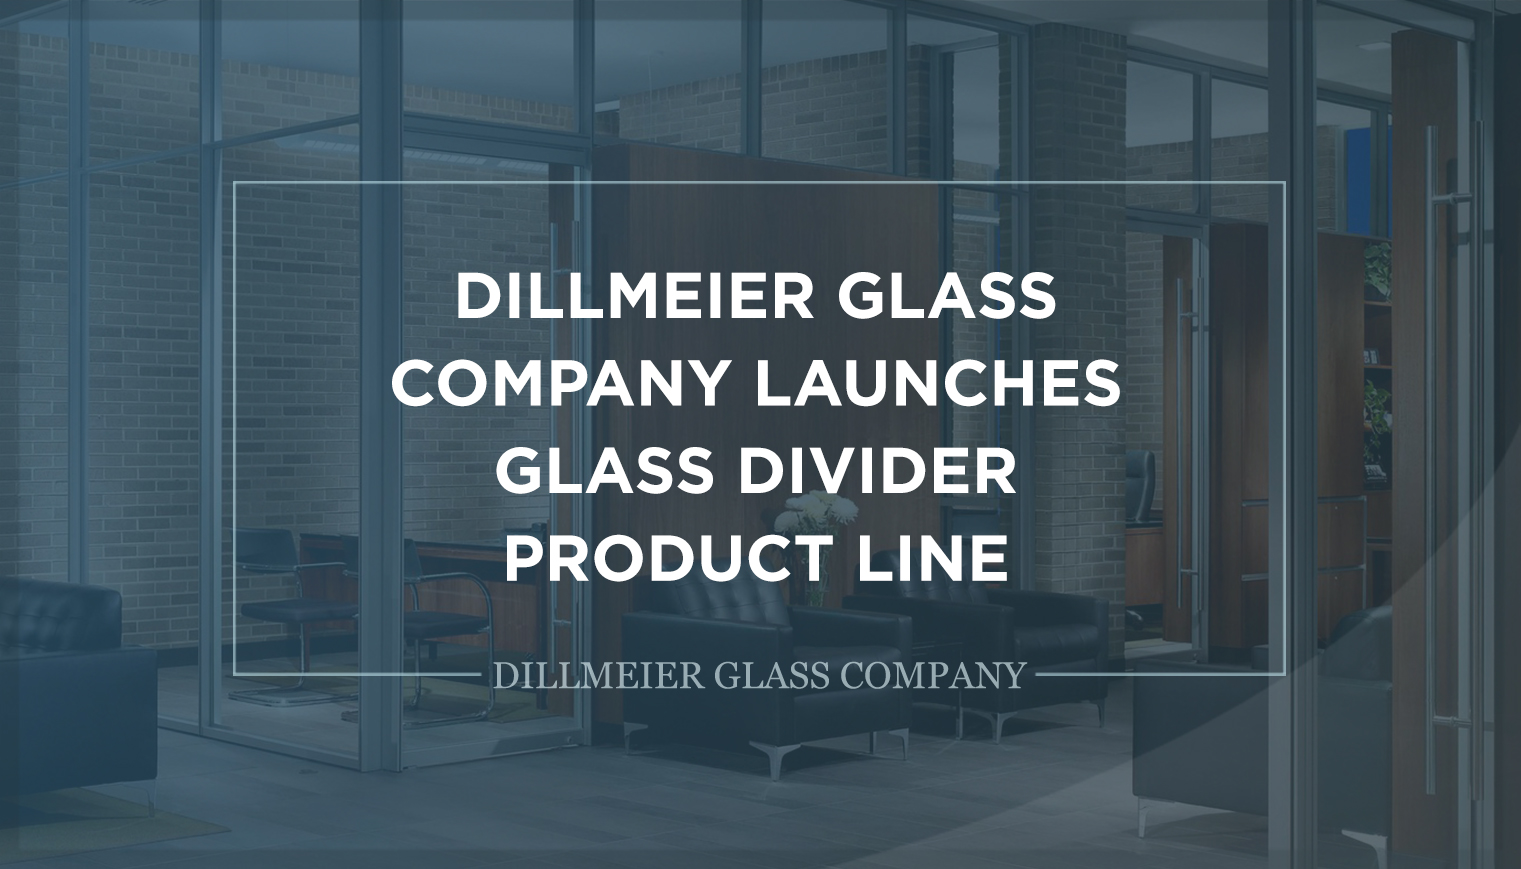 Dillmeier Glass Company Launches Glass Divider Product Line